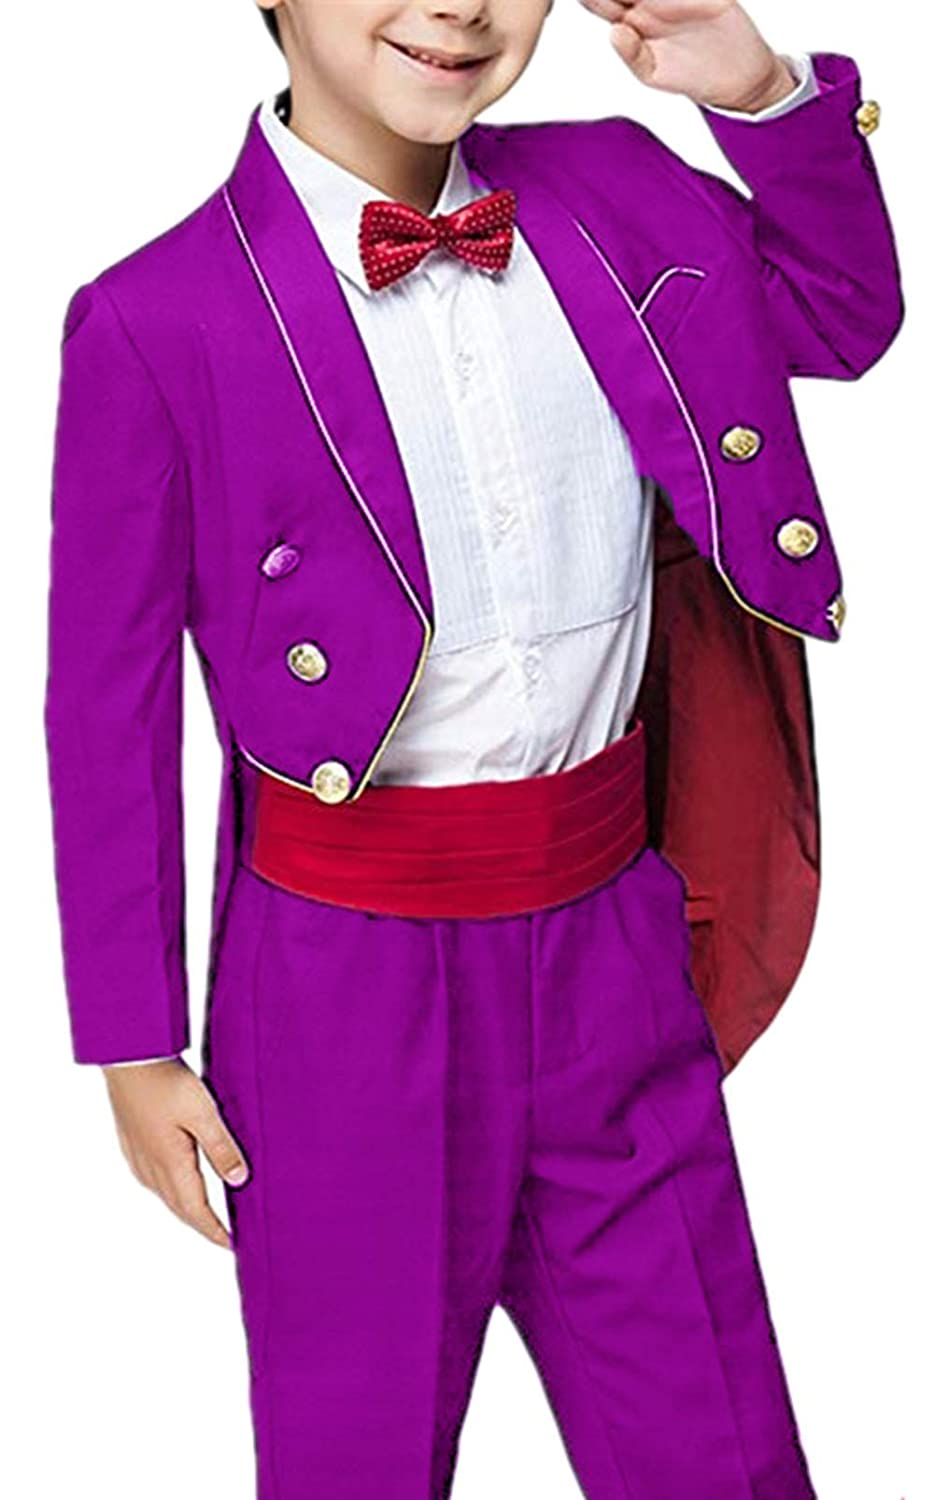 Suxiaoxi Boys Retro 2 Pieces Tailcoat Wedding Suits Shwal Lapel Dress for Party